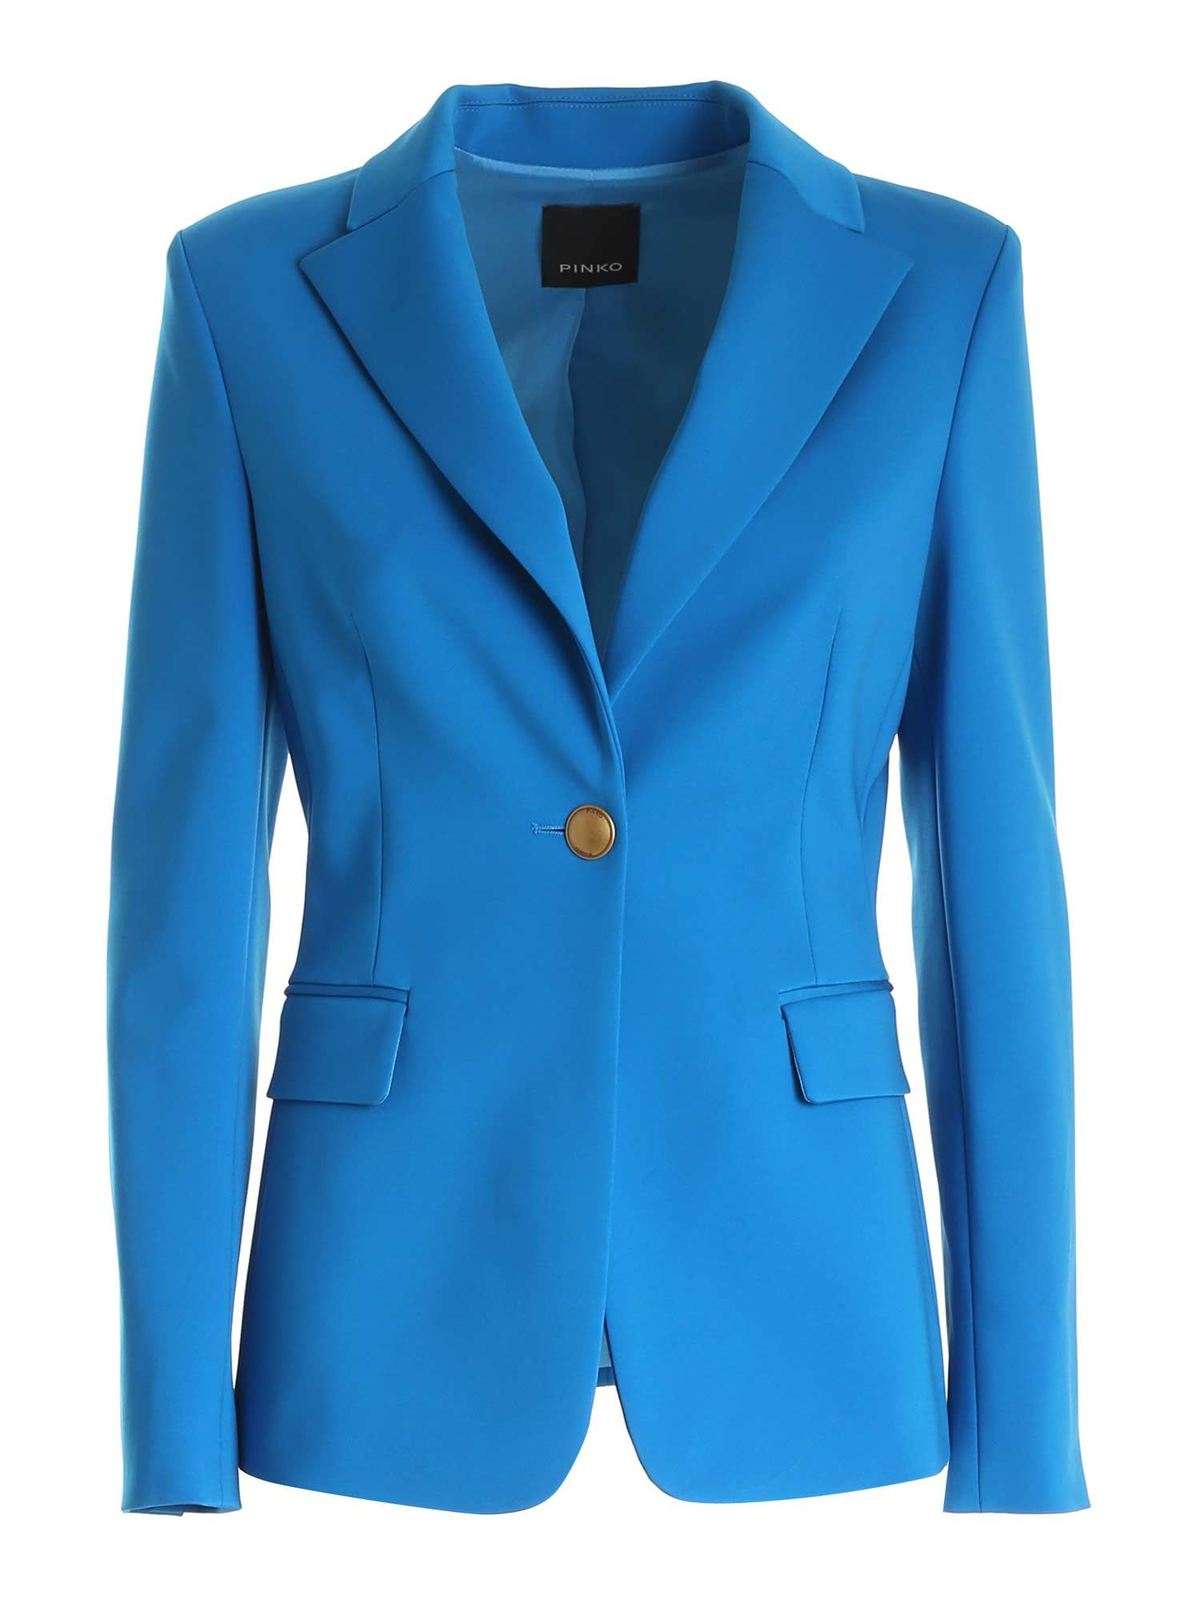 Pinko SIGMA 2 JACKET IN BLUE